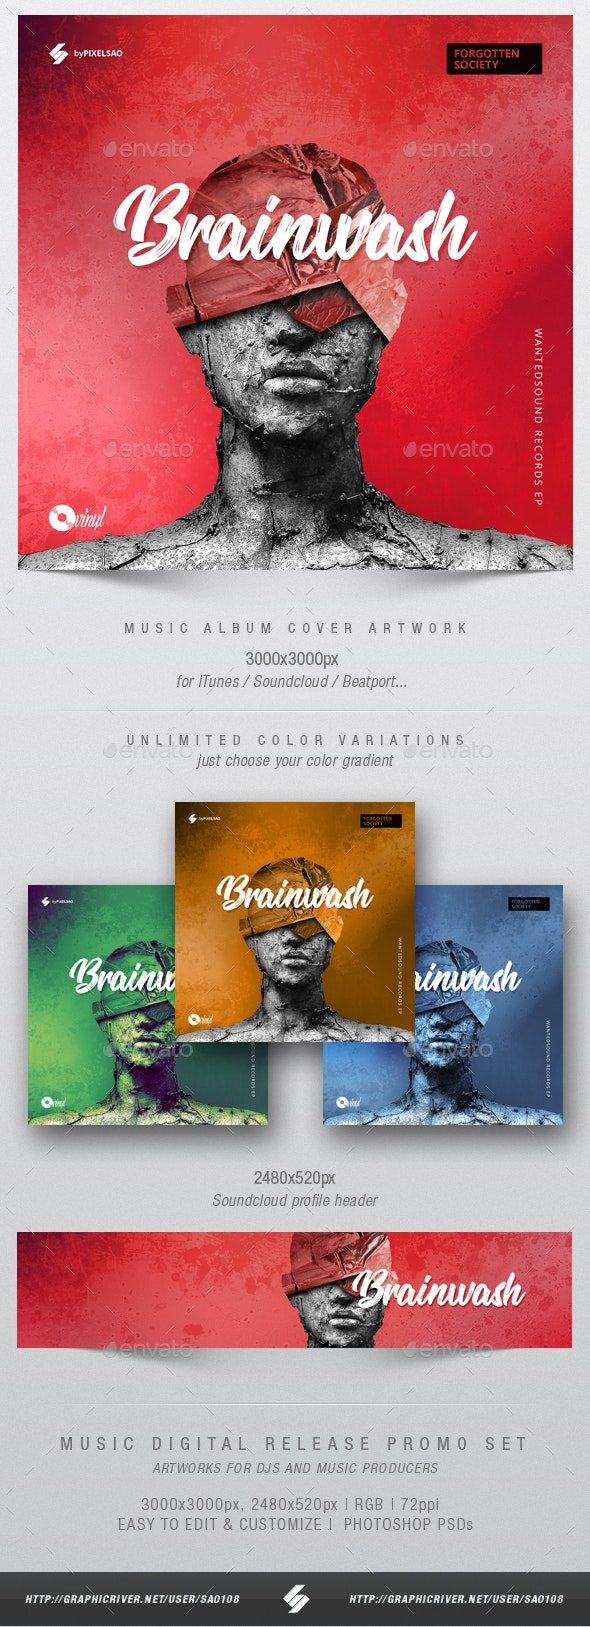 Brainwash - Music Album Cover Artwork Template - Miscellaneous Social Media